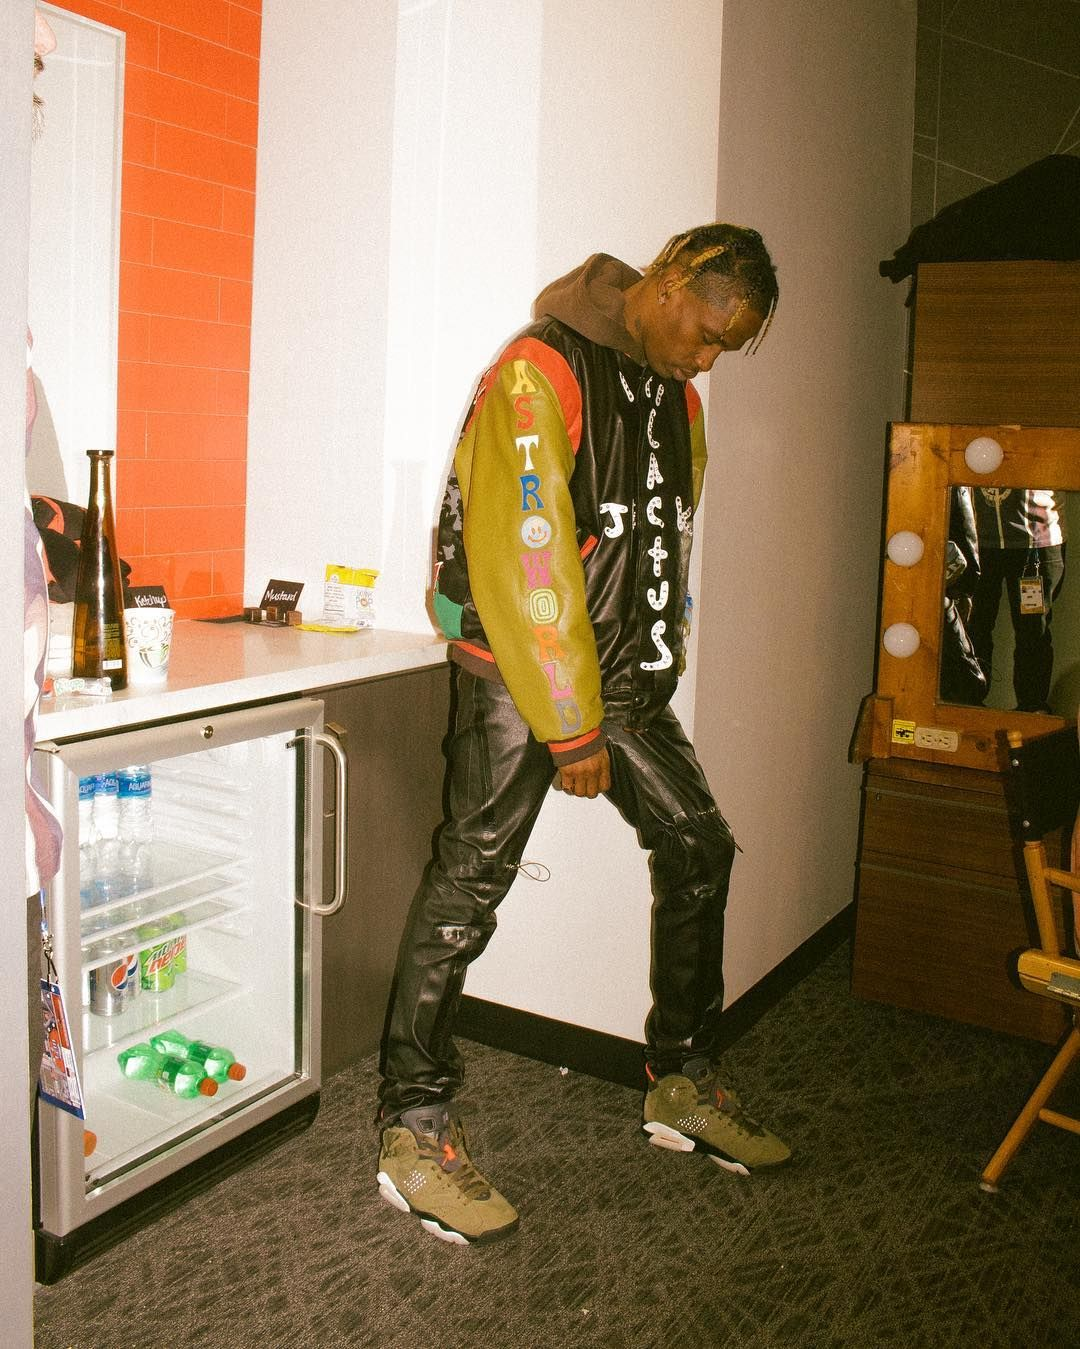 Travis Scott S Collaboration With Nike And Jordan Brand Has Been Picking Up Some Serious Steam Here S A Guide To Al Travis Scott Outfits Travis Scott Jordan 6